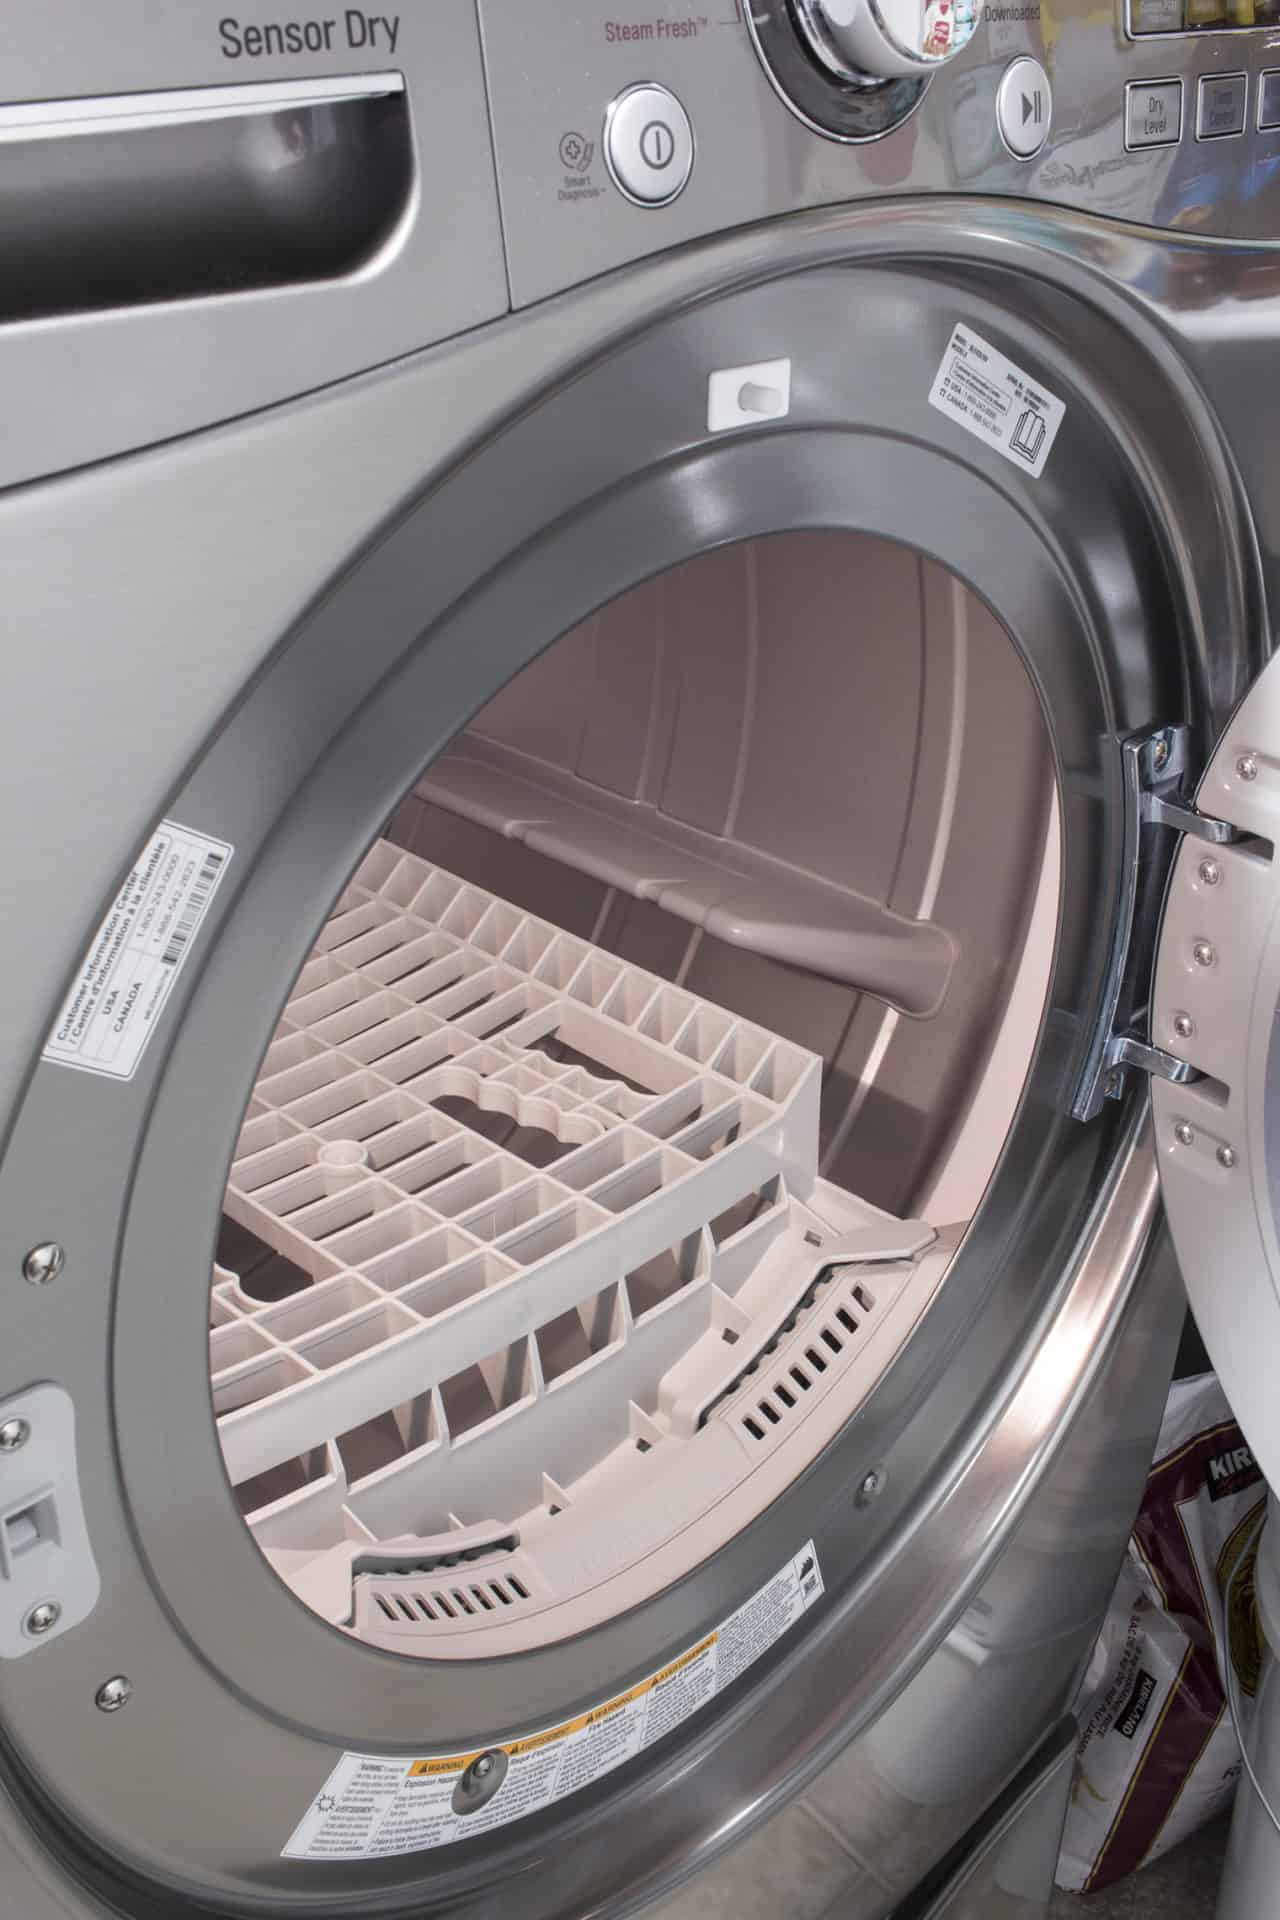 drying rack inside dryer